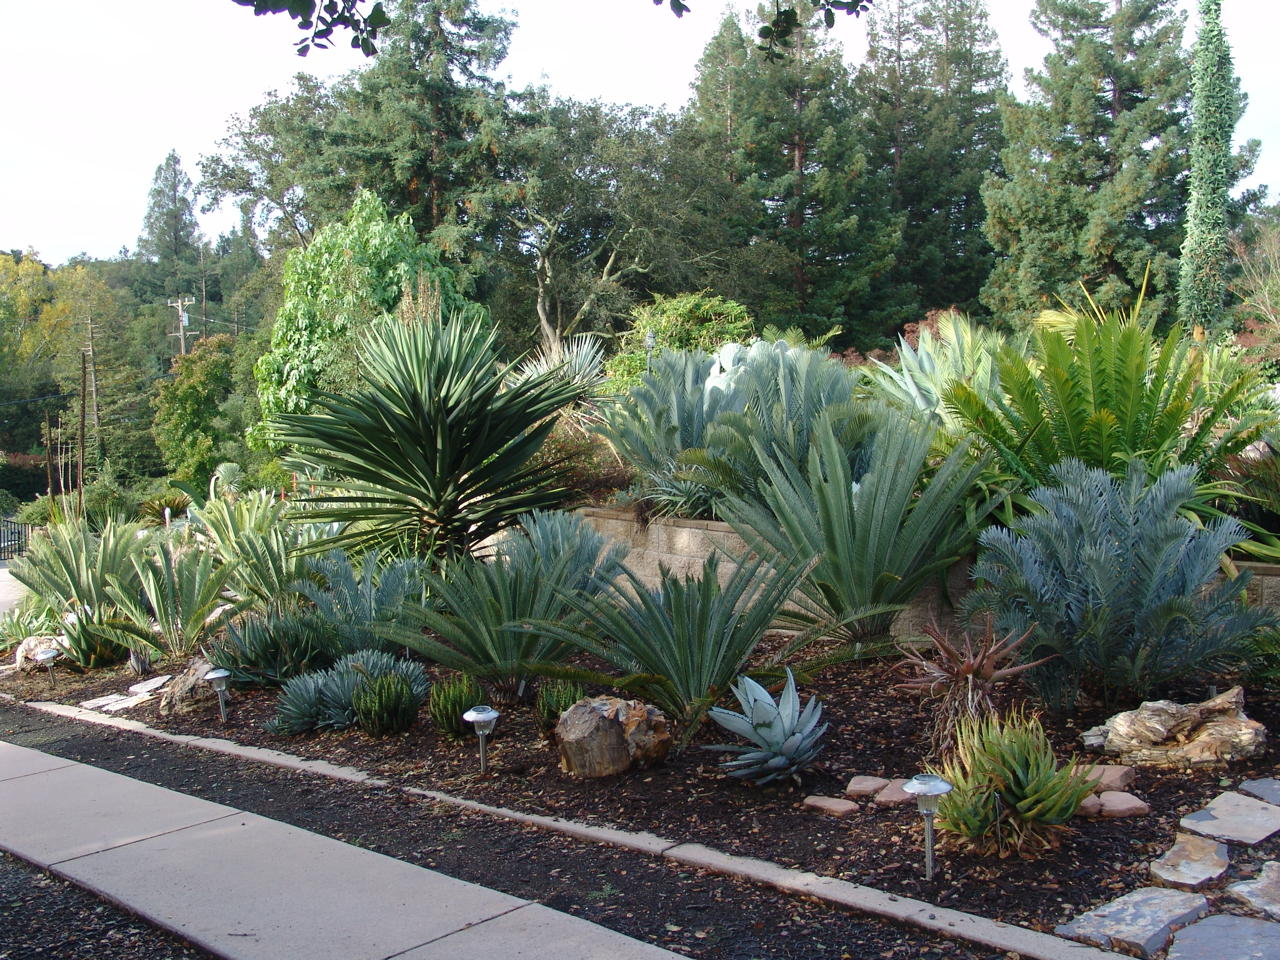 A great Cycad Garden